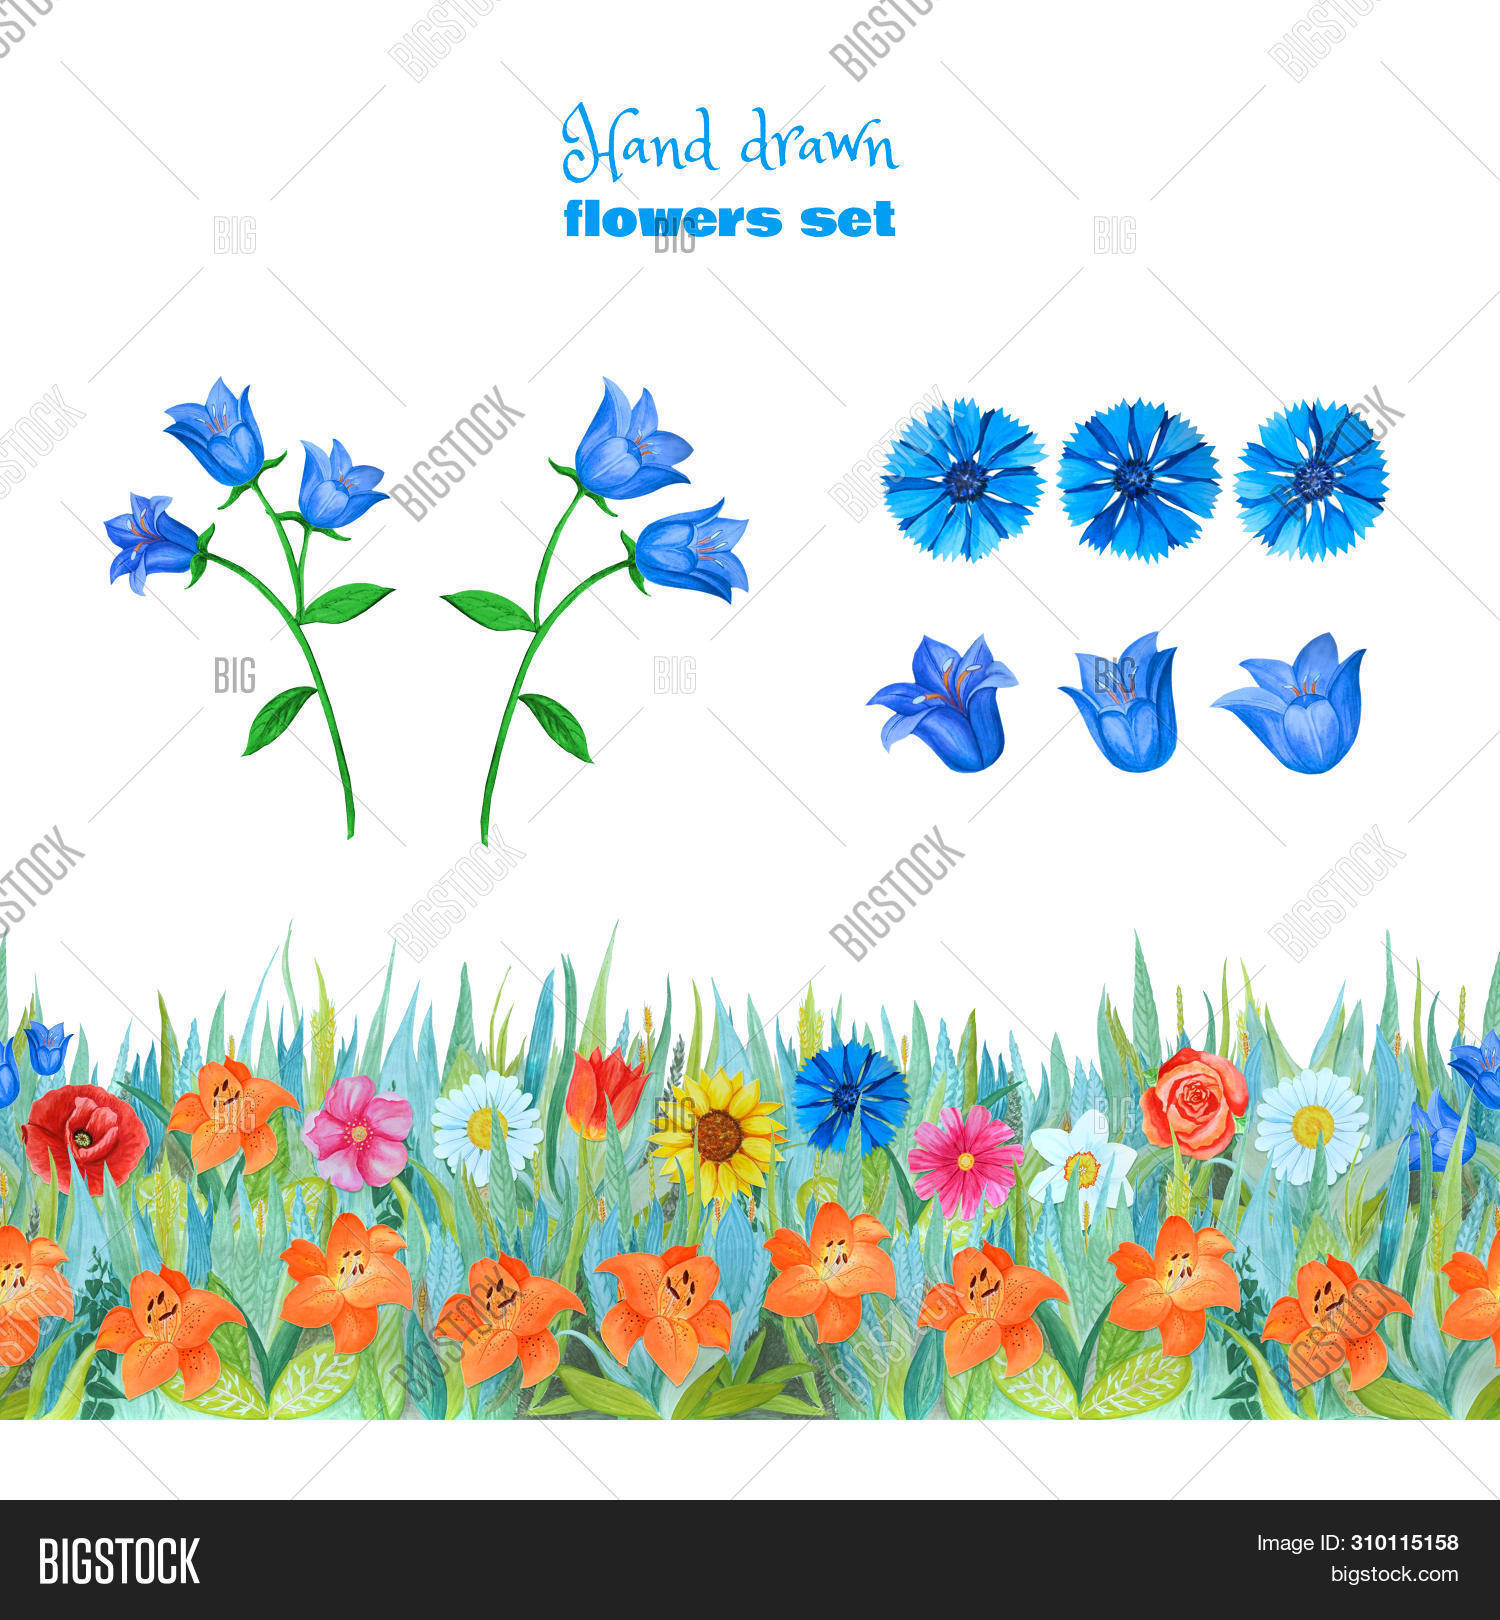 abstract,background,bell,blue,border,bright,color,cornflowers,cute,fabric,flower,graphic,hand,isolated,lilies,meadow,modern,ornament,paint,paper,pattern,plant,poppie,red,repeat,retro,seamless,set,shape,simple,stripe,surface,template,textile,texture,tile,trendy,tulips,wallpaper,watercolor,white,wildflowers